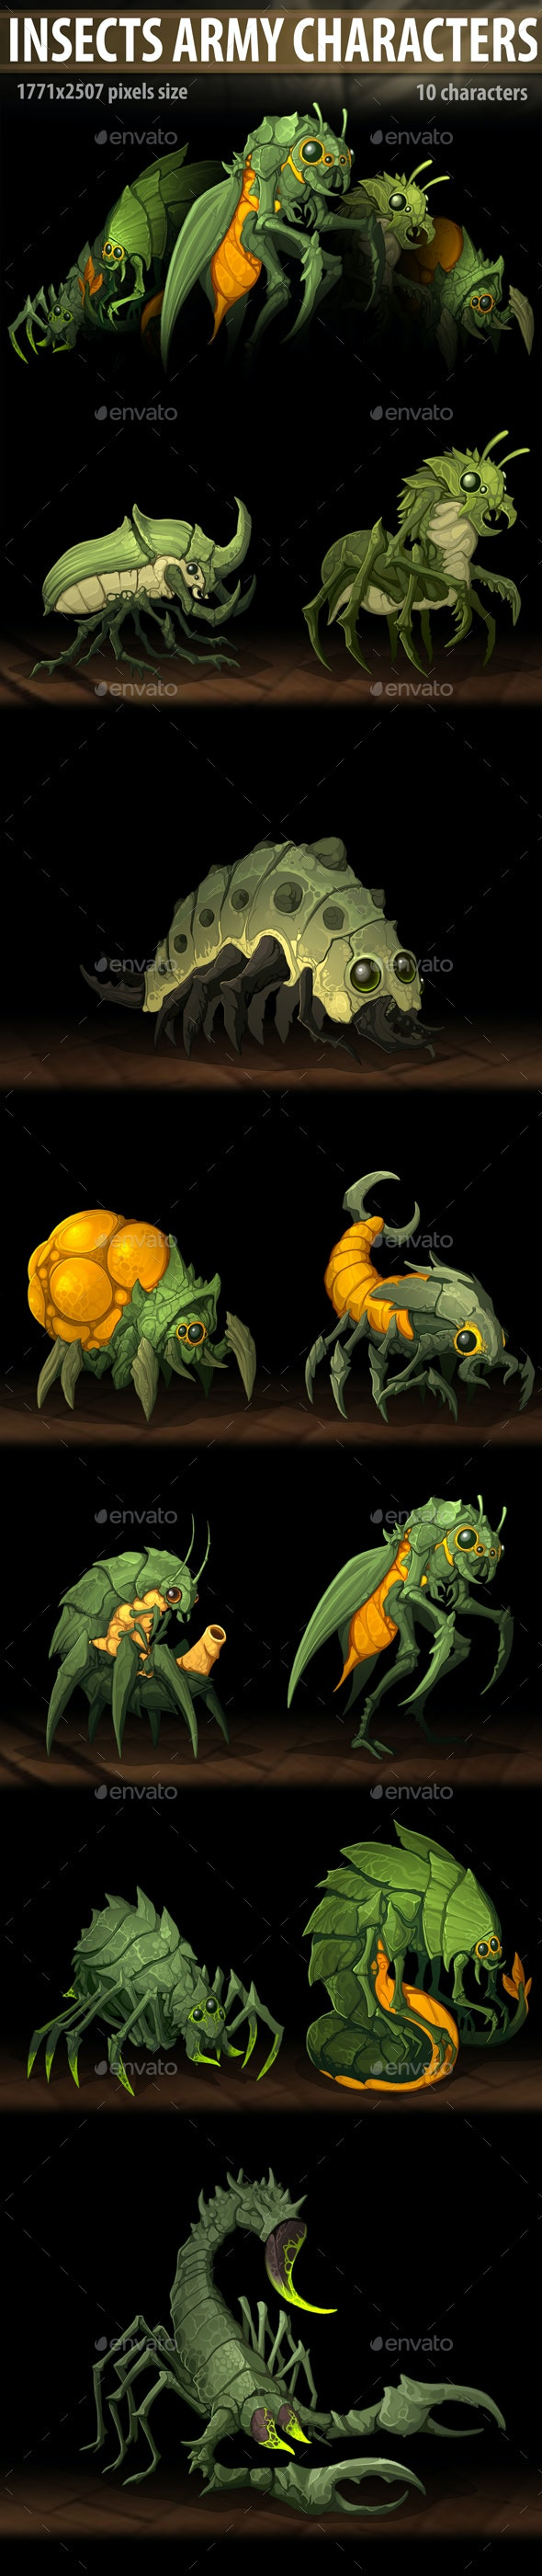 Insects Army Characters - Miscellaneous Game Assets